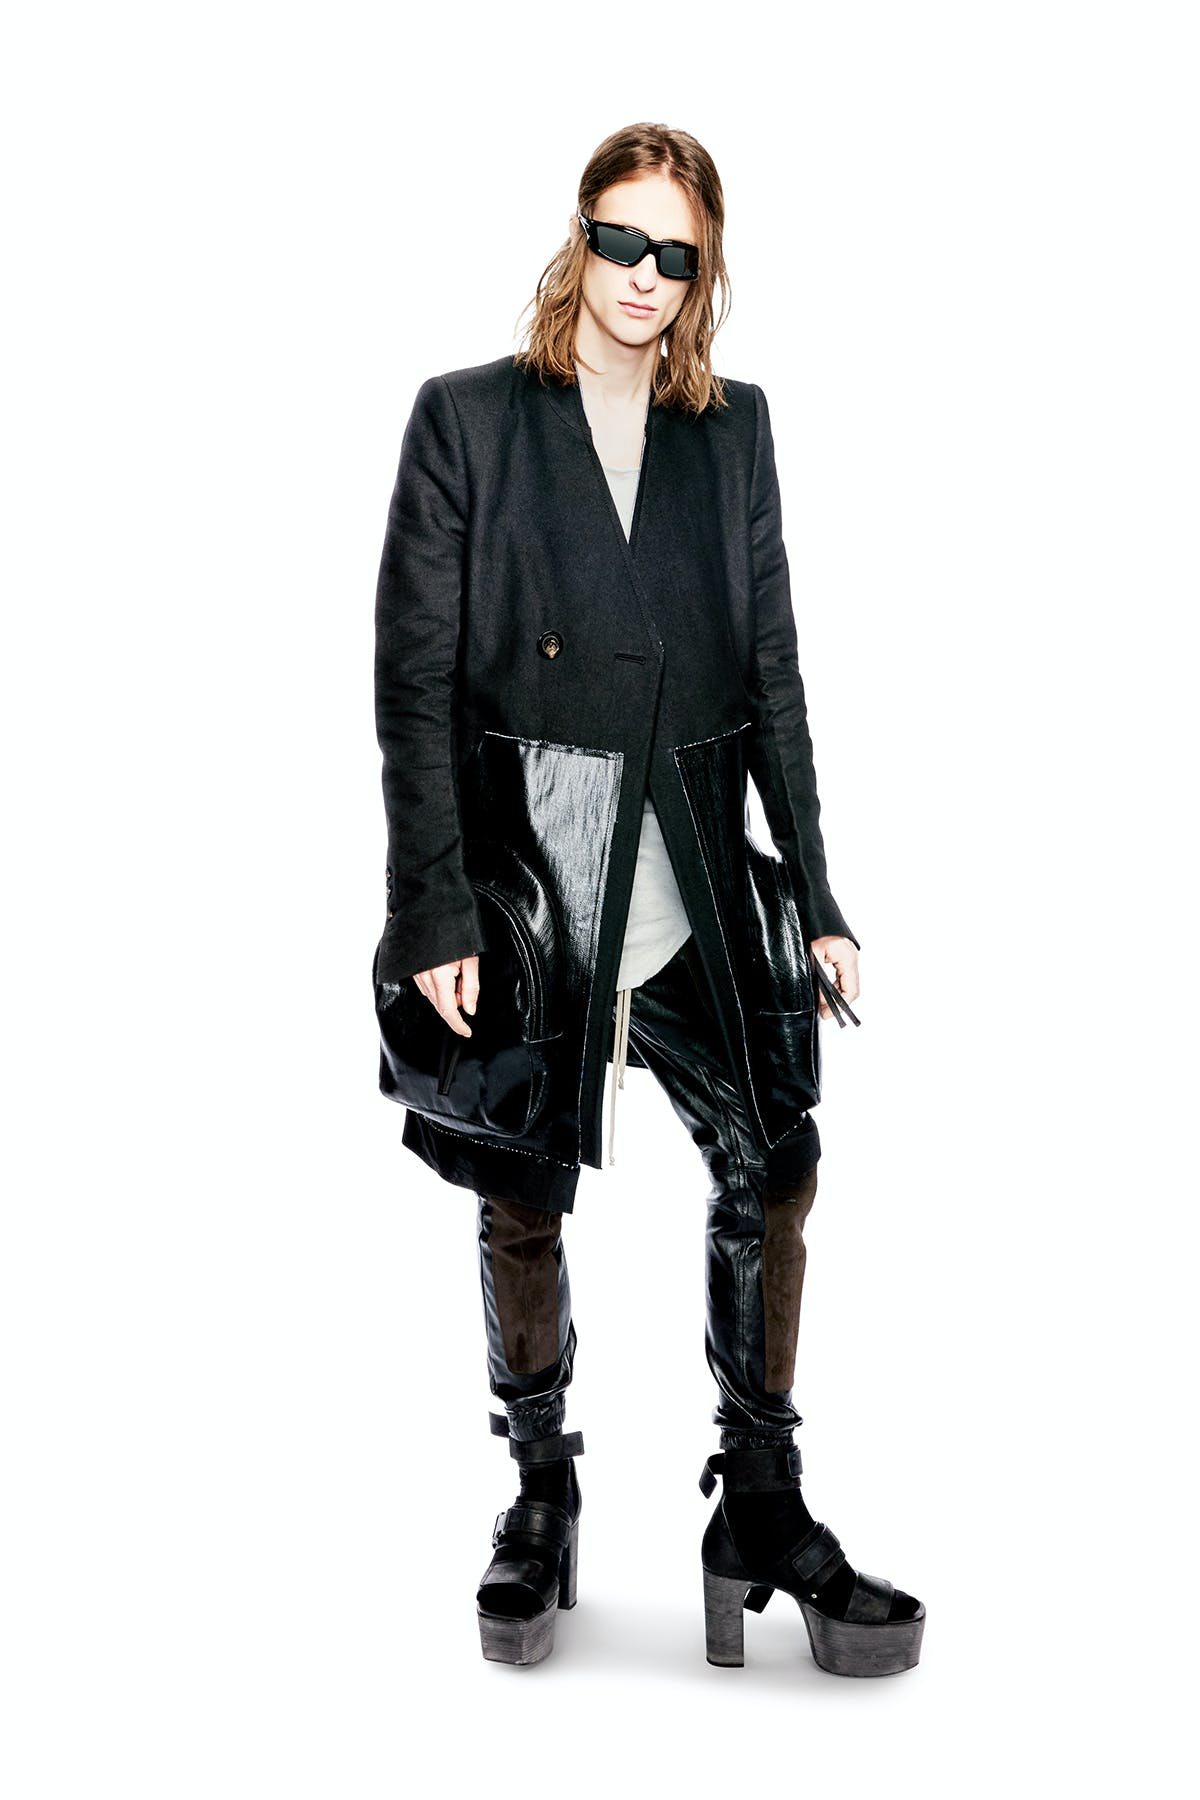 Rick Owens Campaign Double Injection Japanese Nylon Frame Sunglasses Mid length Coat With Leather Oversized Pockets Leather Joggers in Black Kiss Strap Boots Mens FW19 Larry